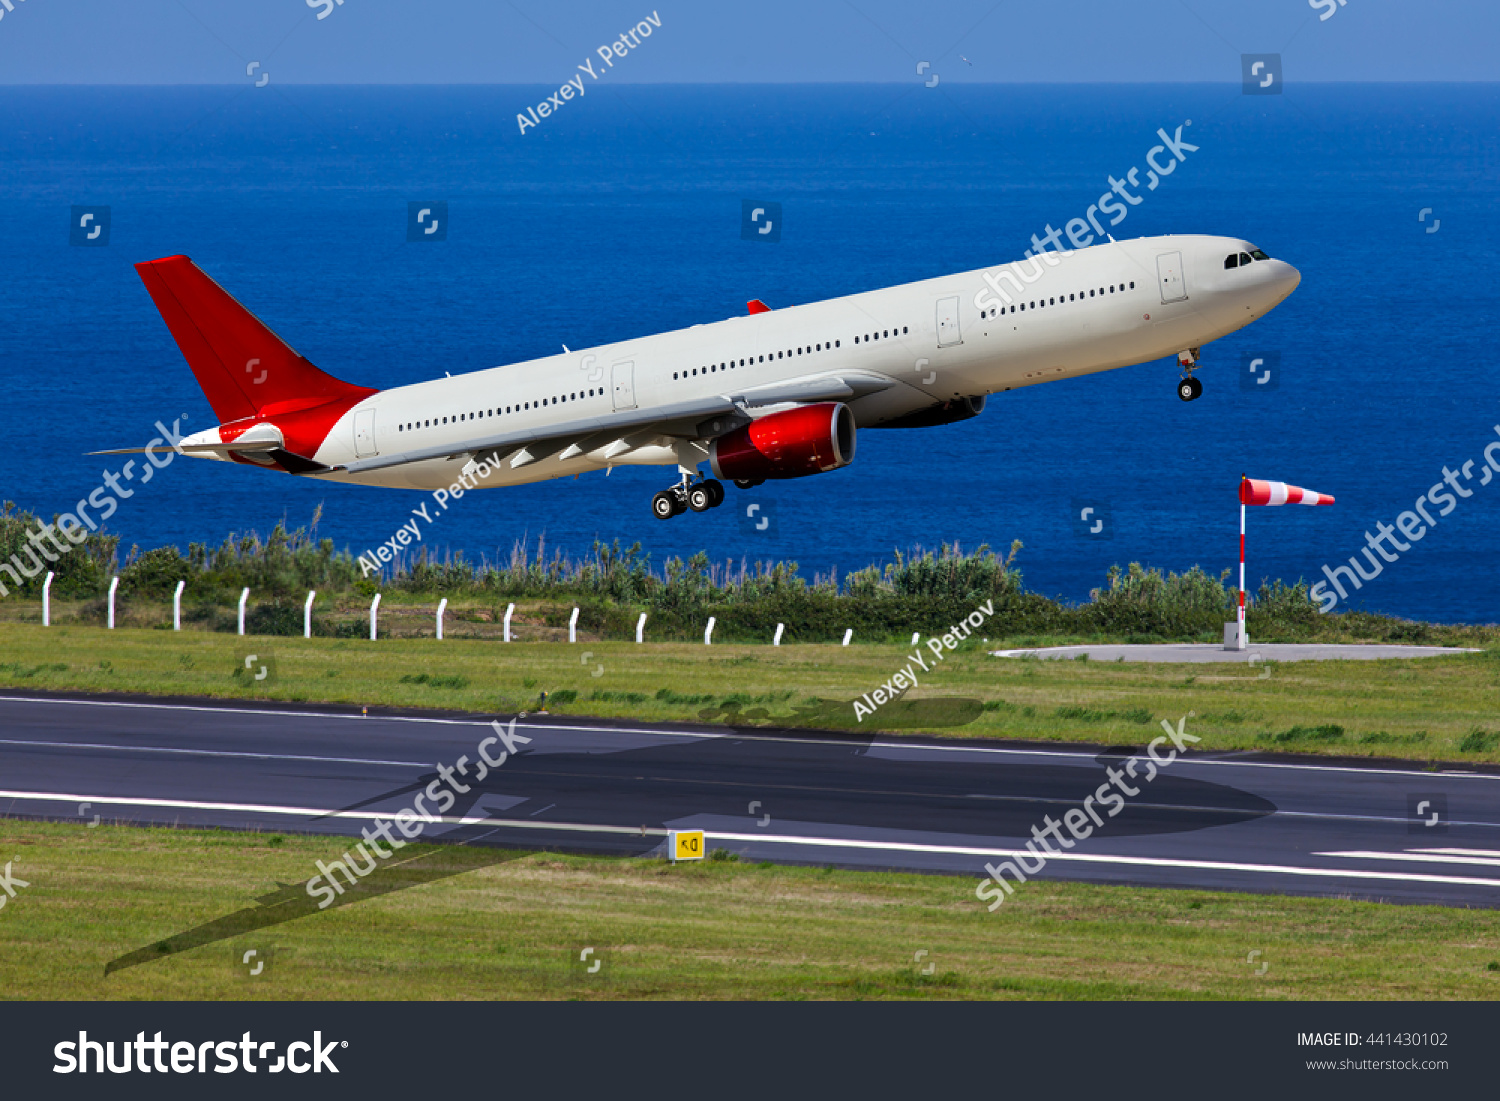 White passenger wide-body airplane with red engines and red tail A few seconds after take-off from the airport runway Aircraft are climbing against the deep-blue ocean